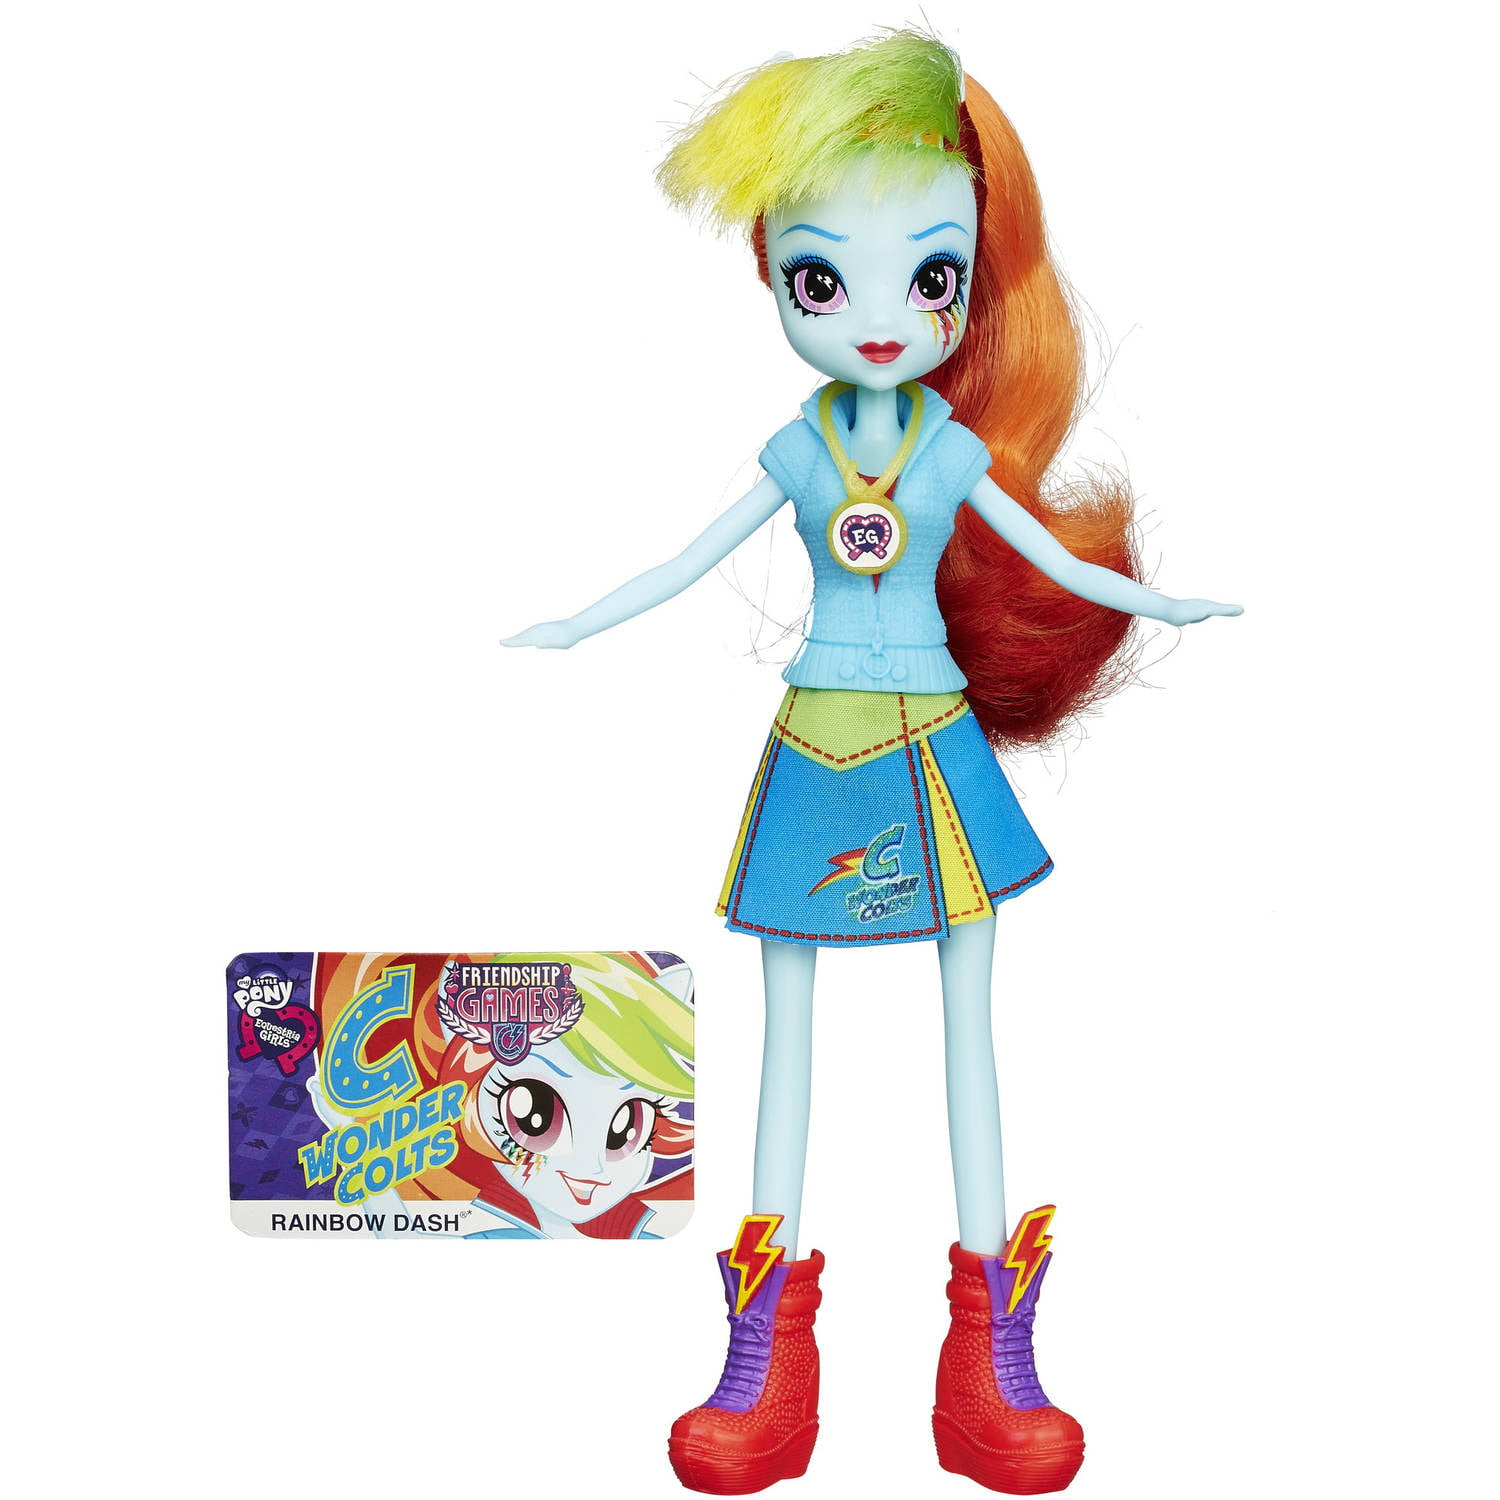 My Little Pony Equestria Girls Rainbow Dash Friendship Games Doll by Hasbro